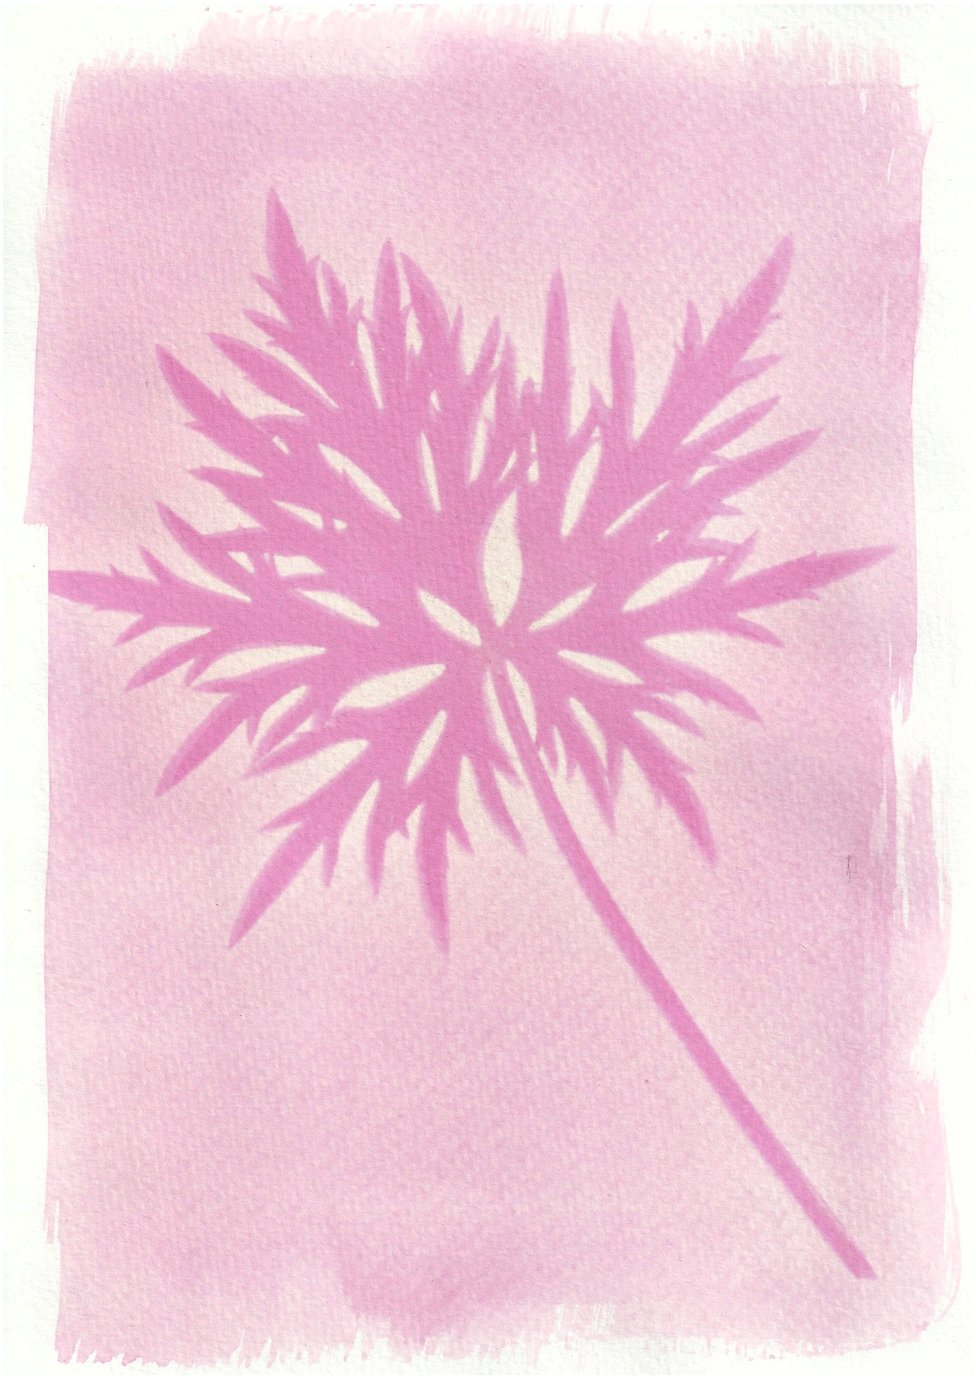 An anthotype print of a large purple leaf